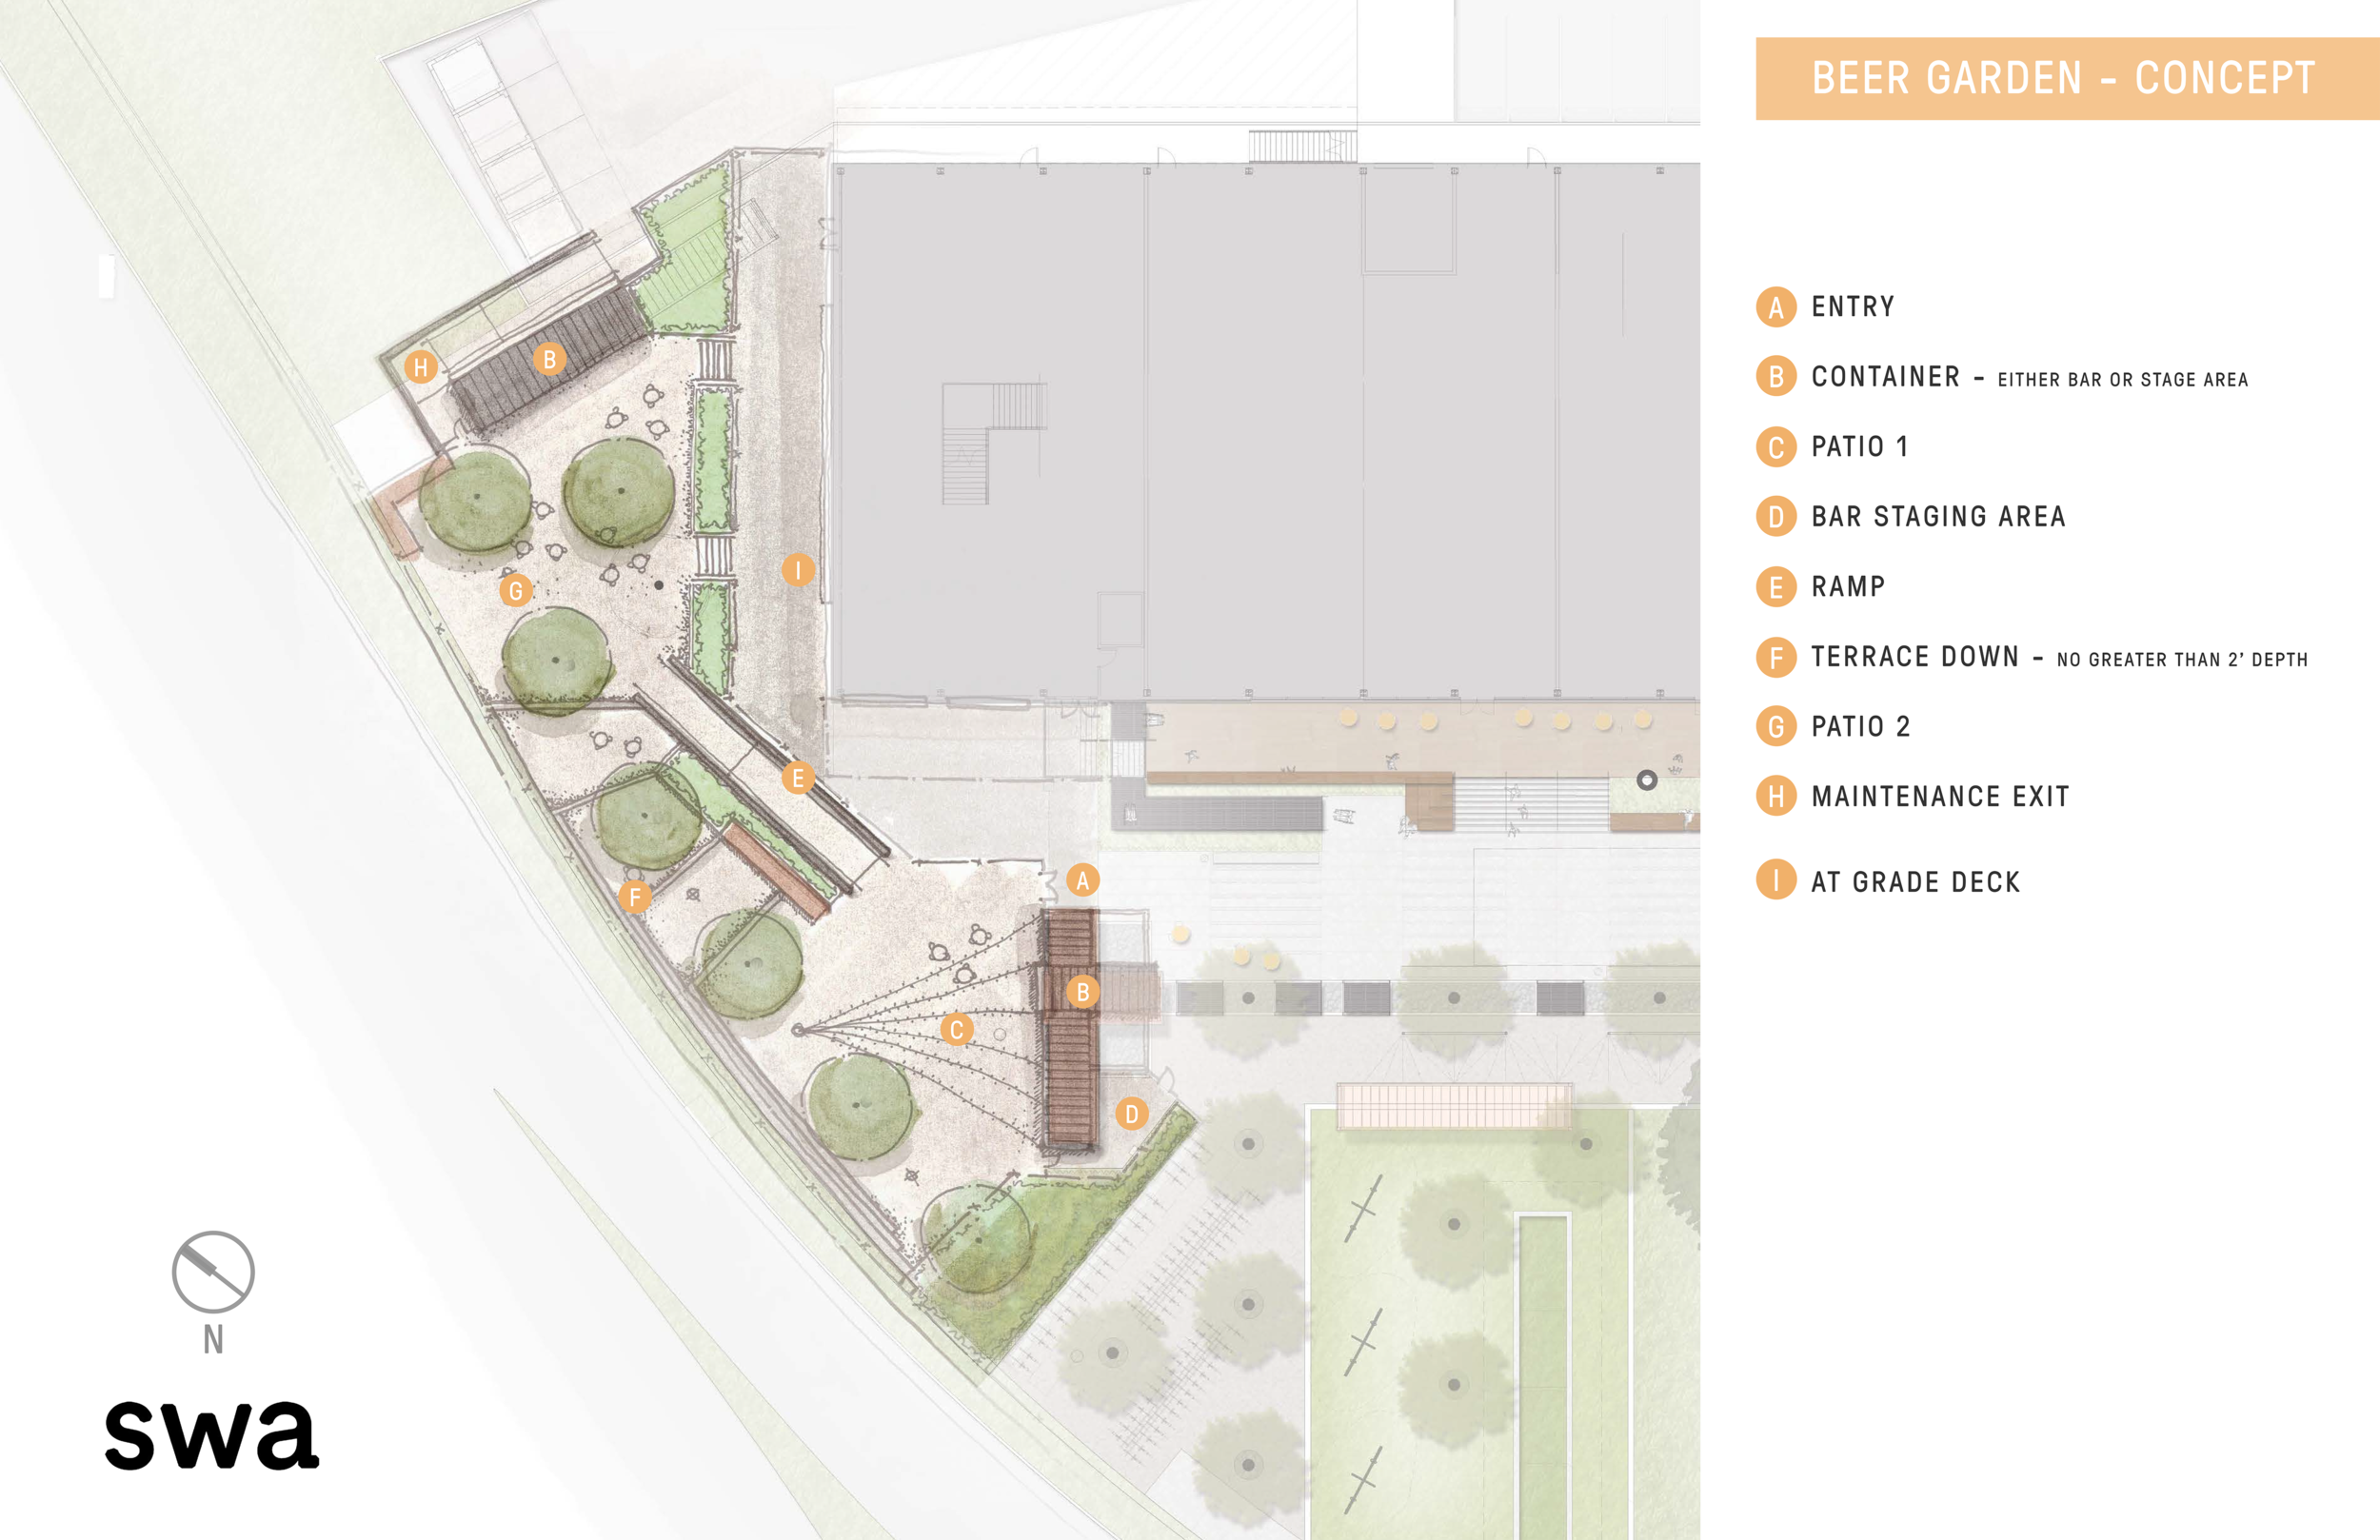 Beer GArden - Adjacent to the market is a 13,000 SF beer garden featuring 80 beers on tap, a dog park bar, stage, and plenty of outdoor seating.